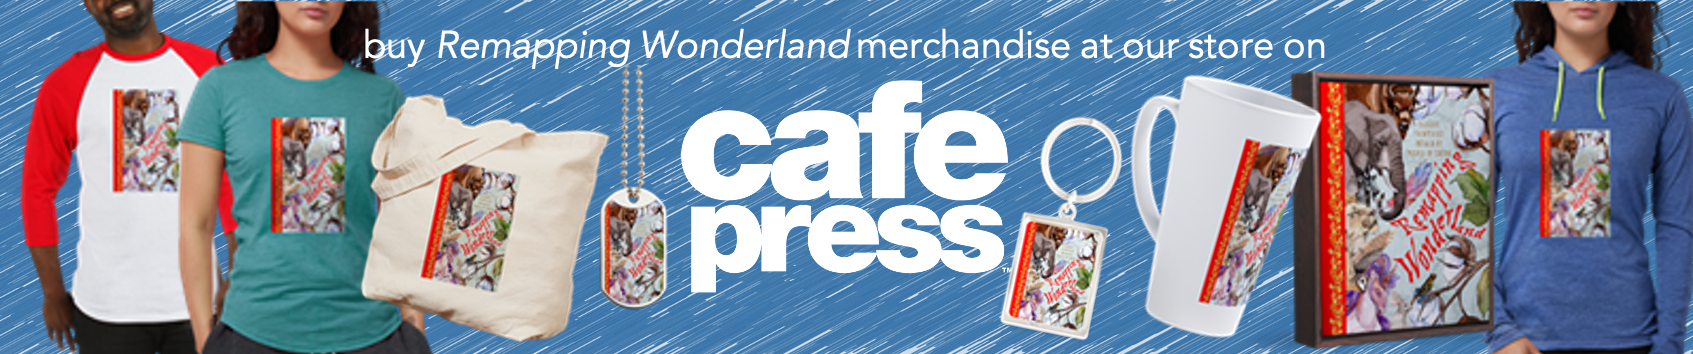 Buy Remapping Wonderland merchandise at Cafe Press